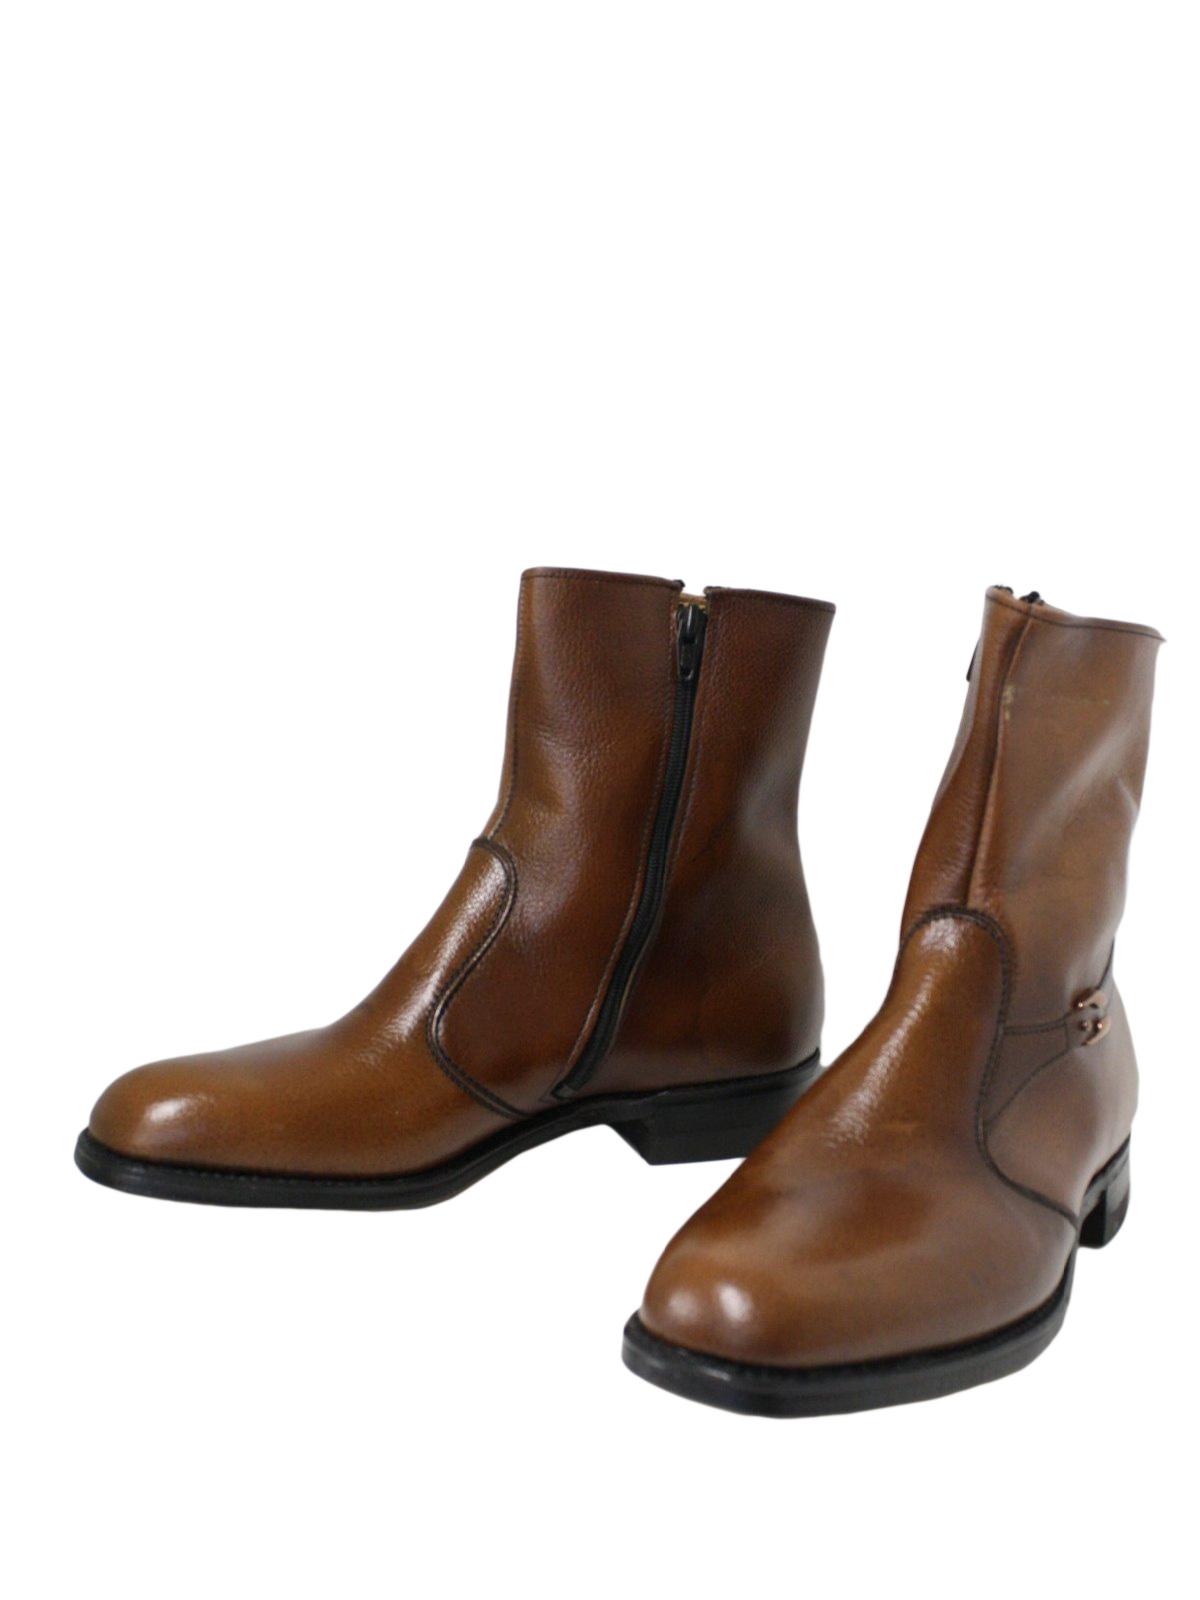 Retro 70's Shoes: 70s -Stacy Adams- Mens brown leather ankle length ...